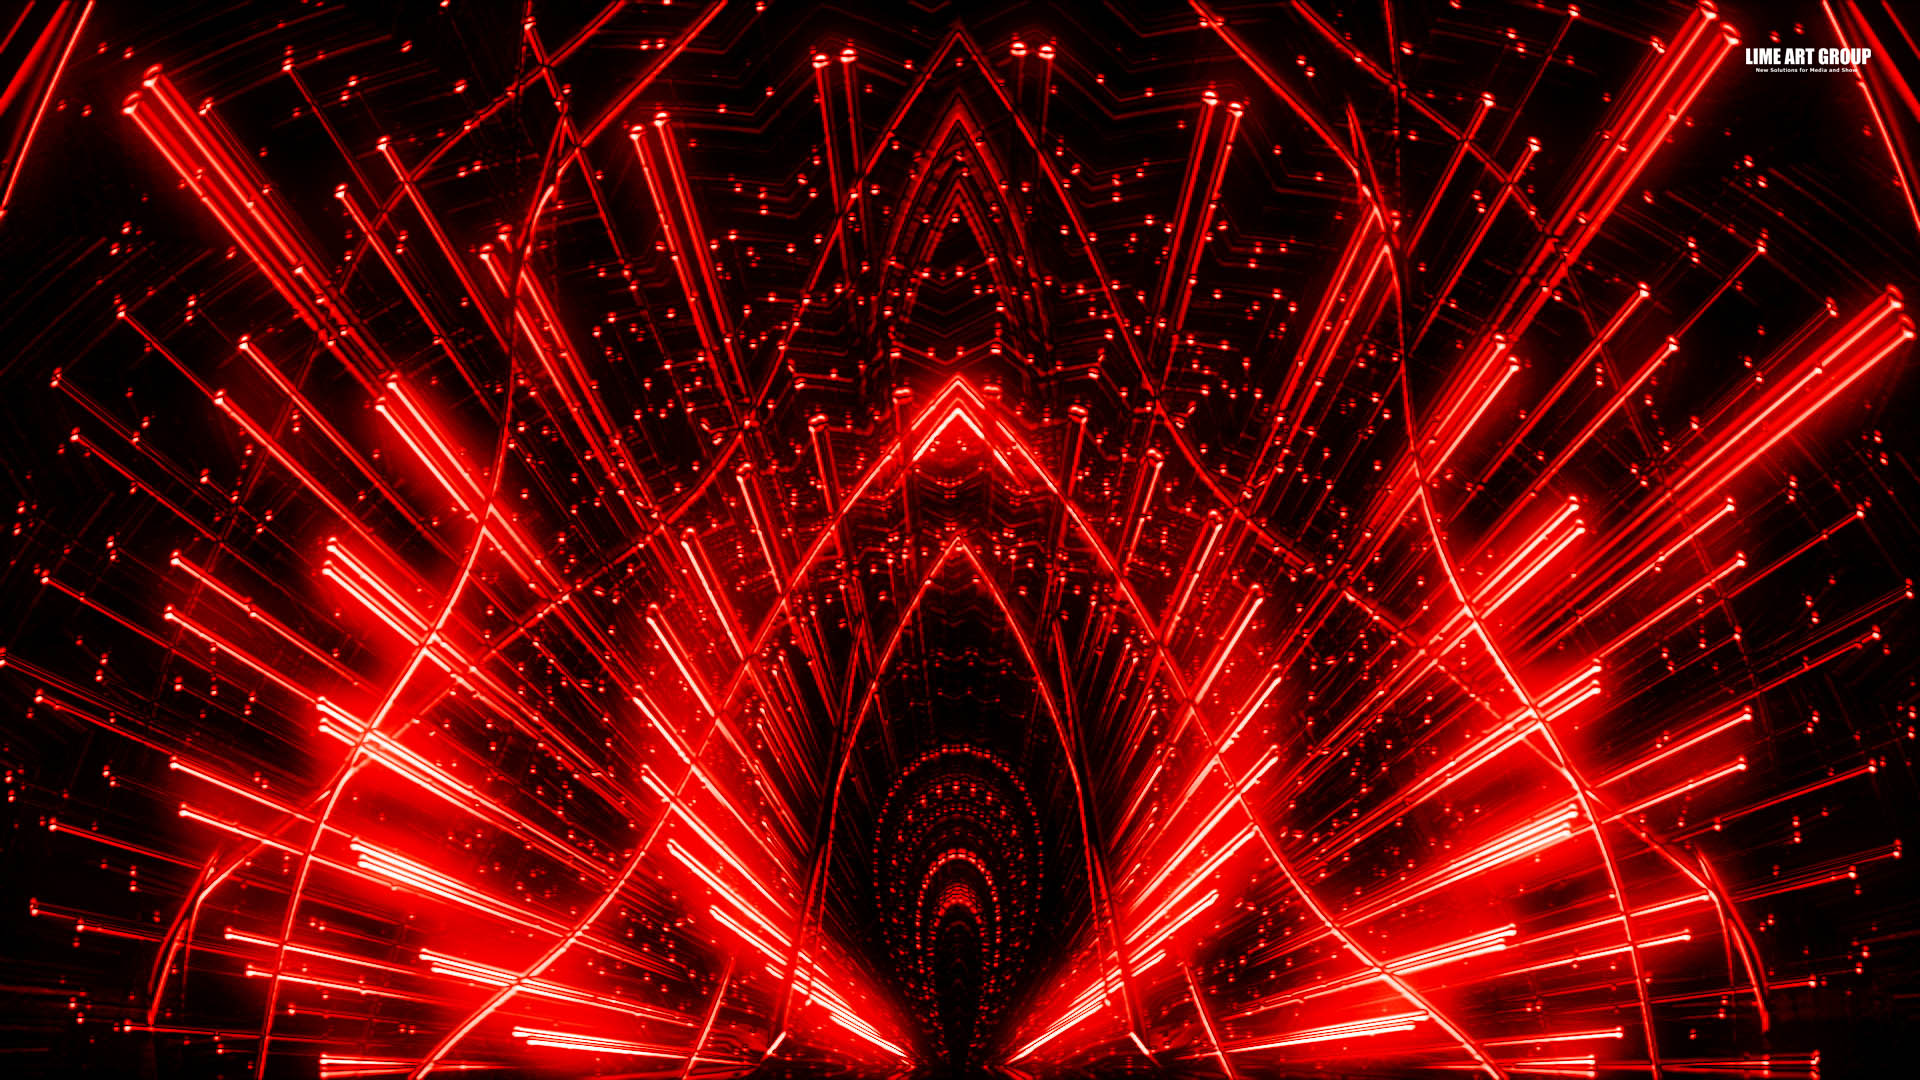 vj loops pack lovely red hd visuals lime art group shop